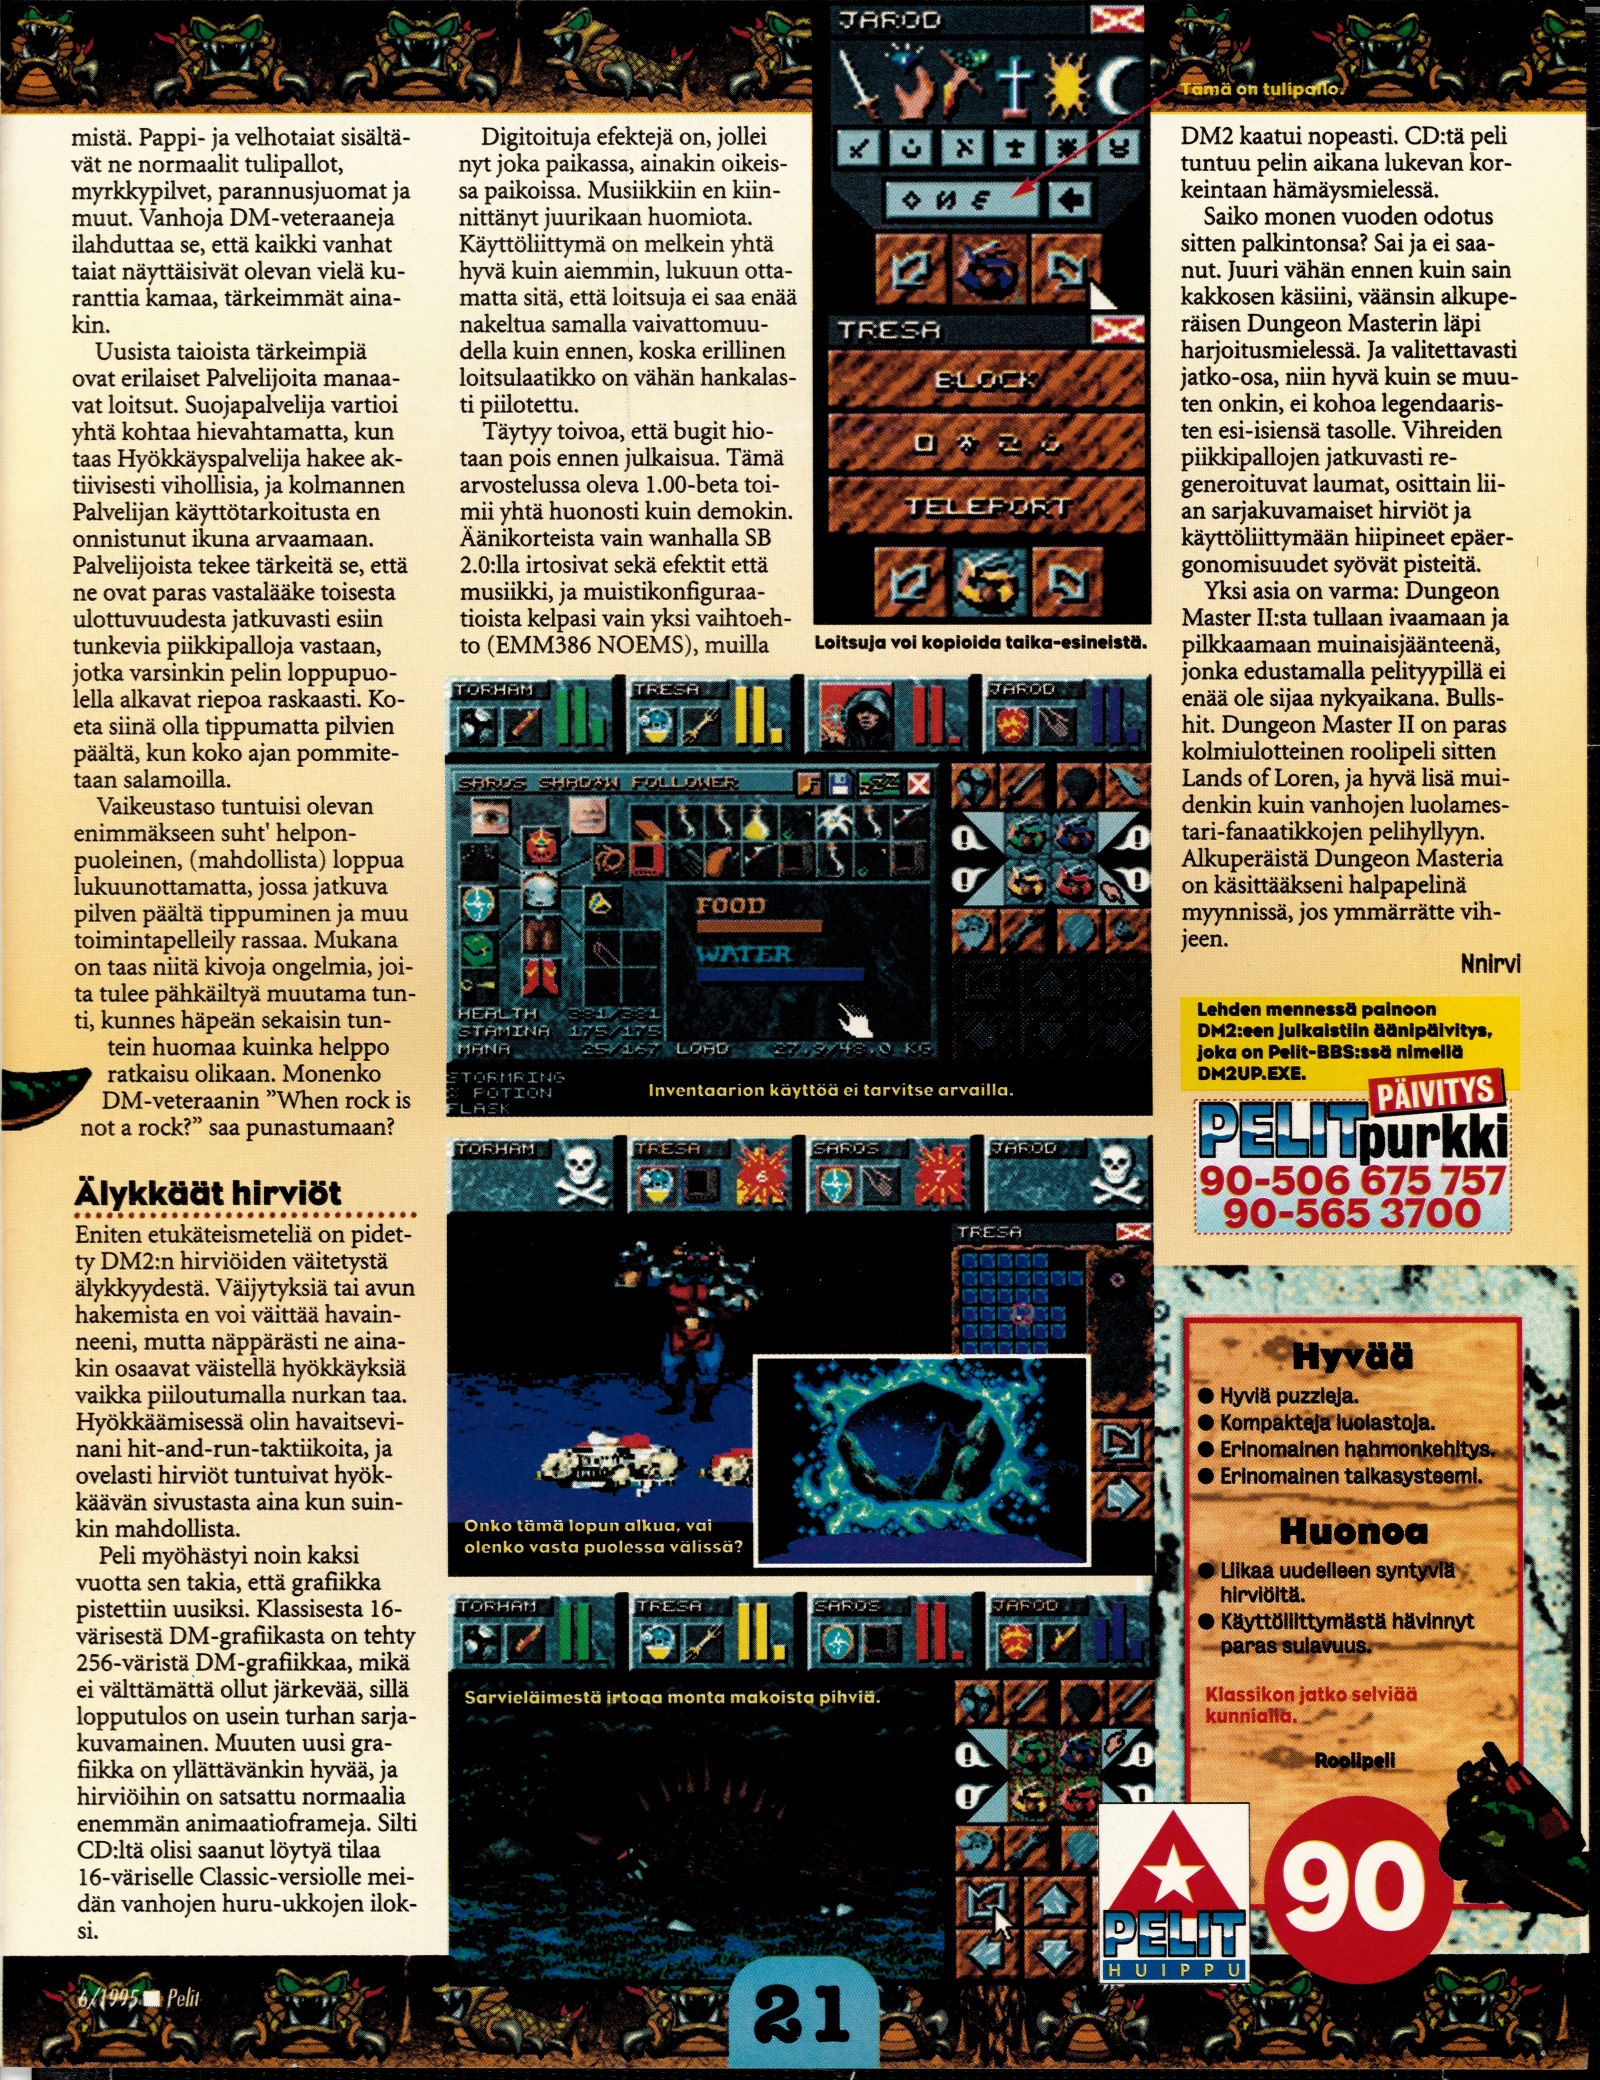 Dungeon Master II for PC Review published in Finnish magazine 'Pelit', June 1995, Page 21